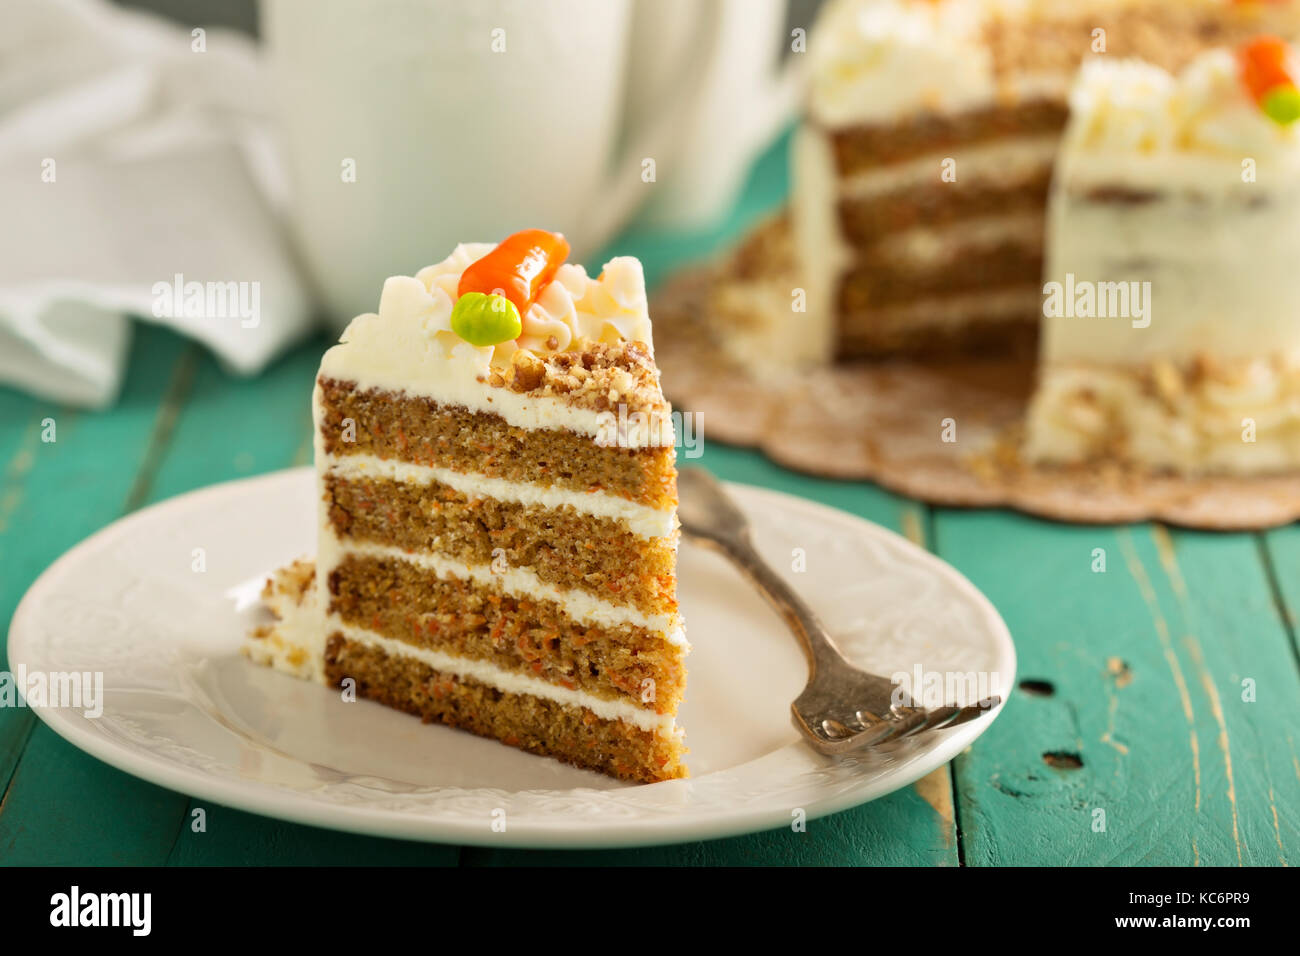 Piece of carrot cake with cream cheese frosting - Stock Image